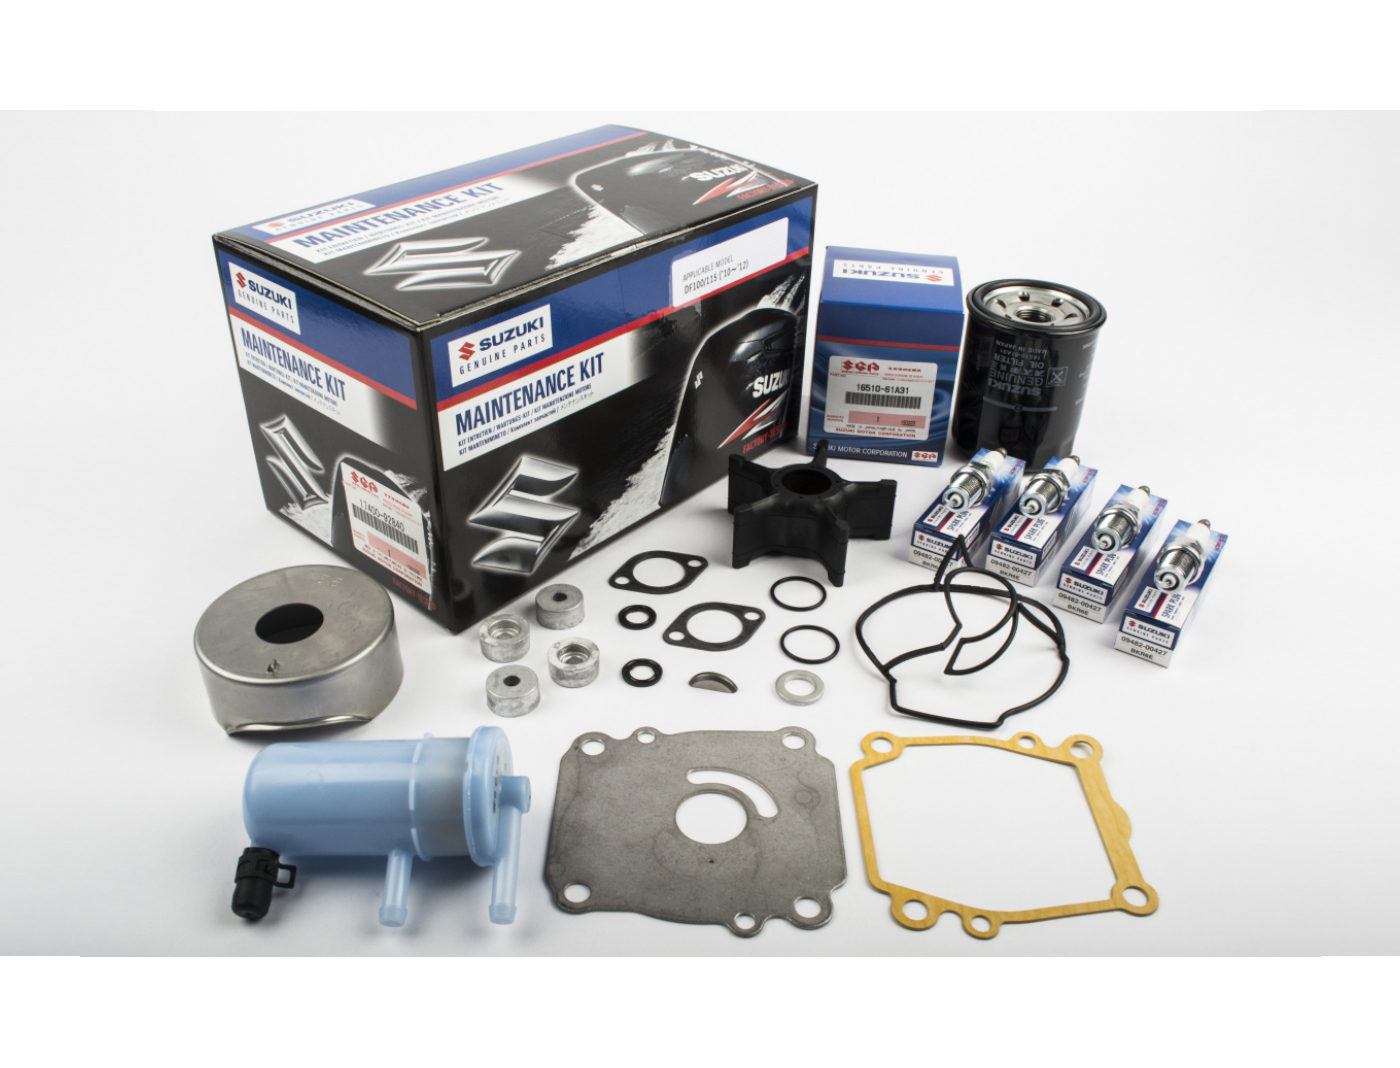 Suzuki DF100/115 Marine Maintenance Service Kit ('10-'12)